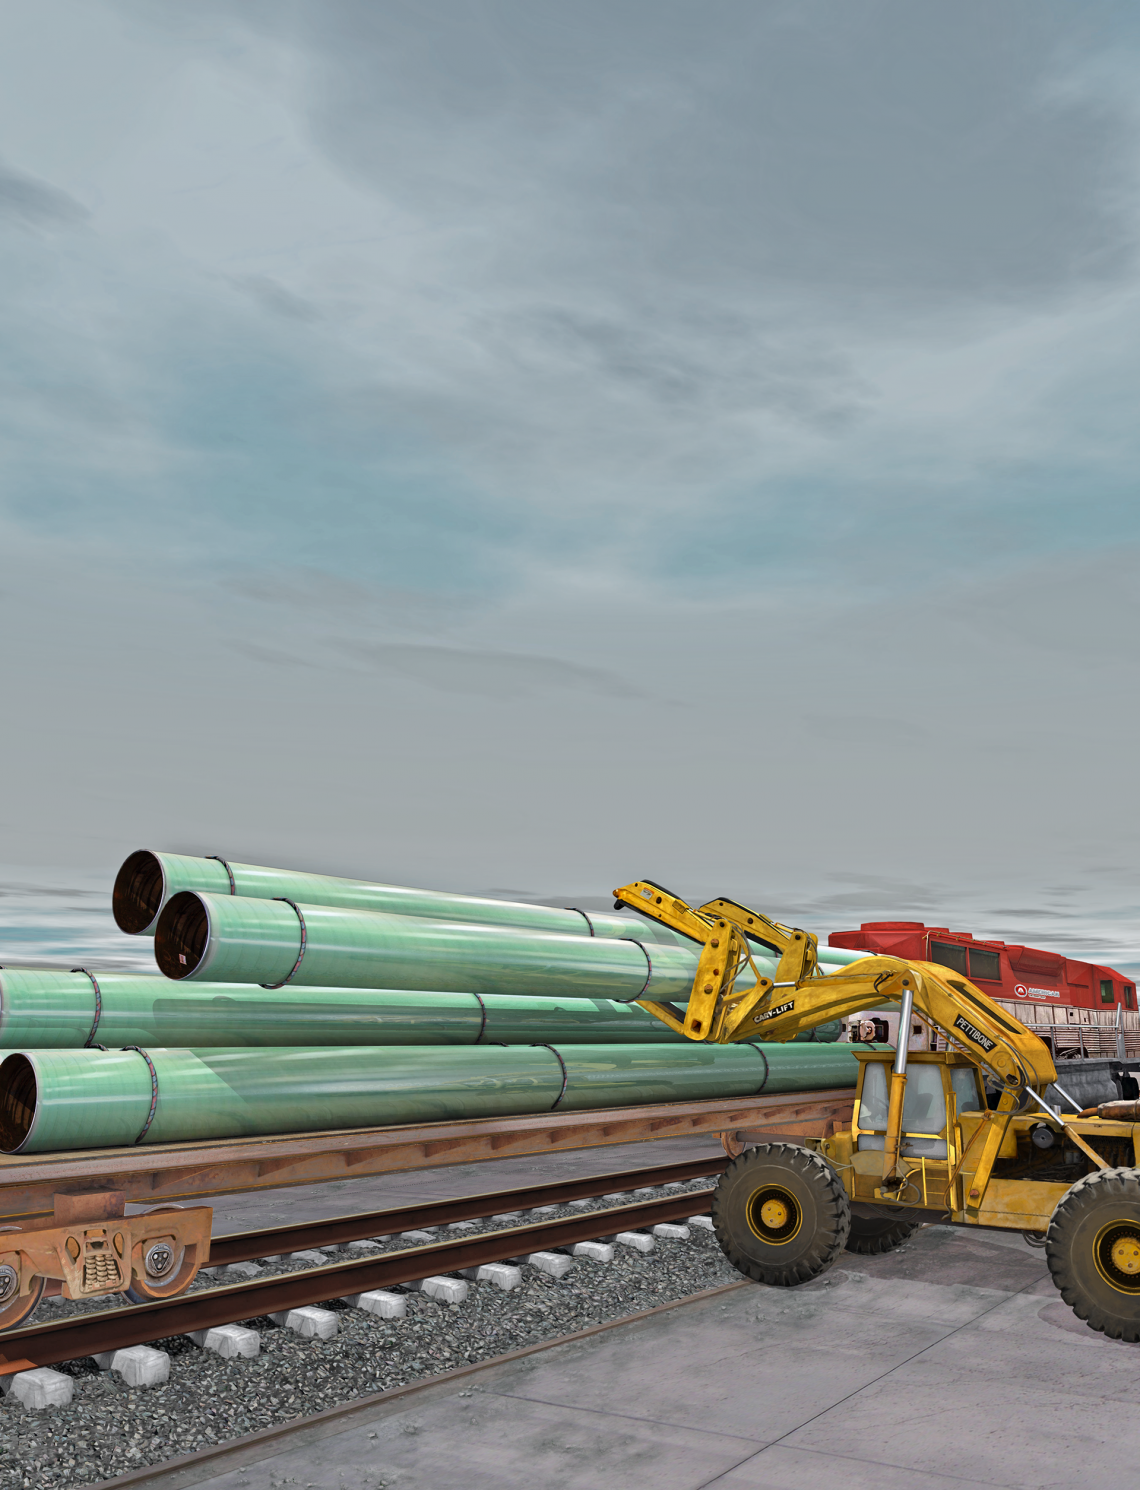 FBE Coated Steel Pipe Being Loaded On Train